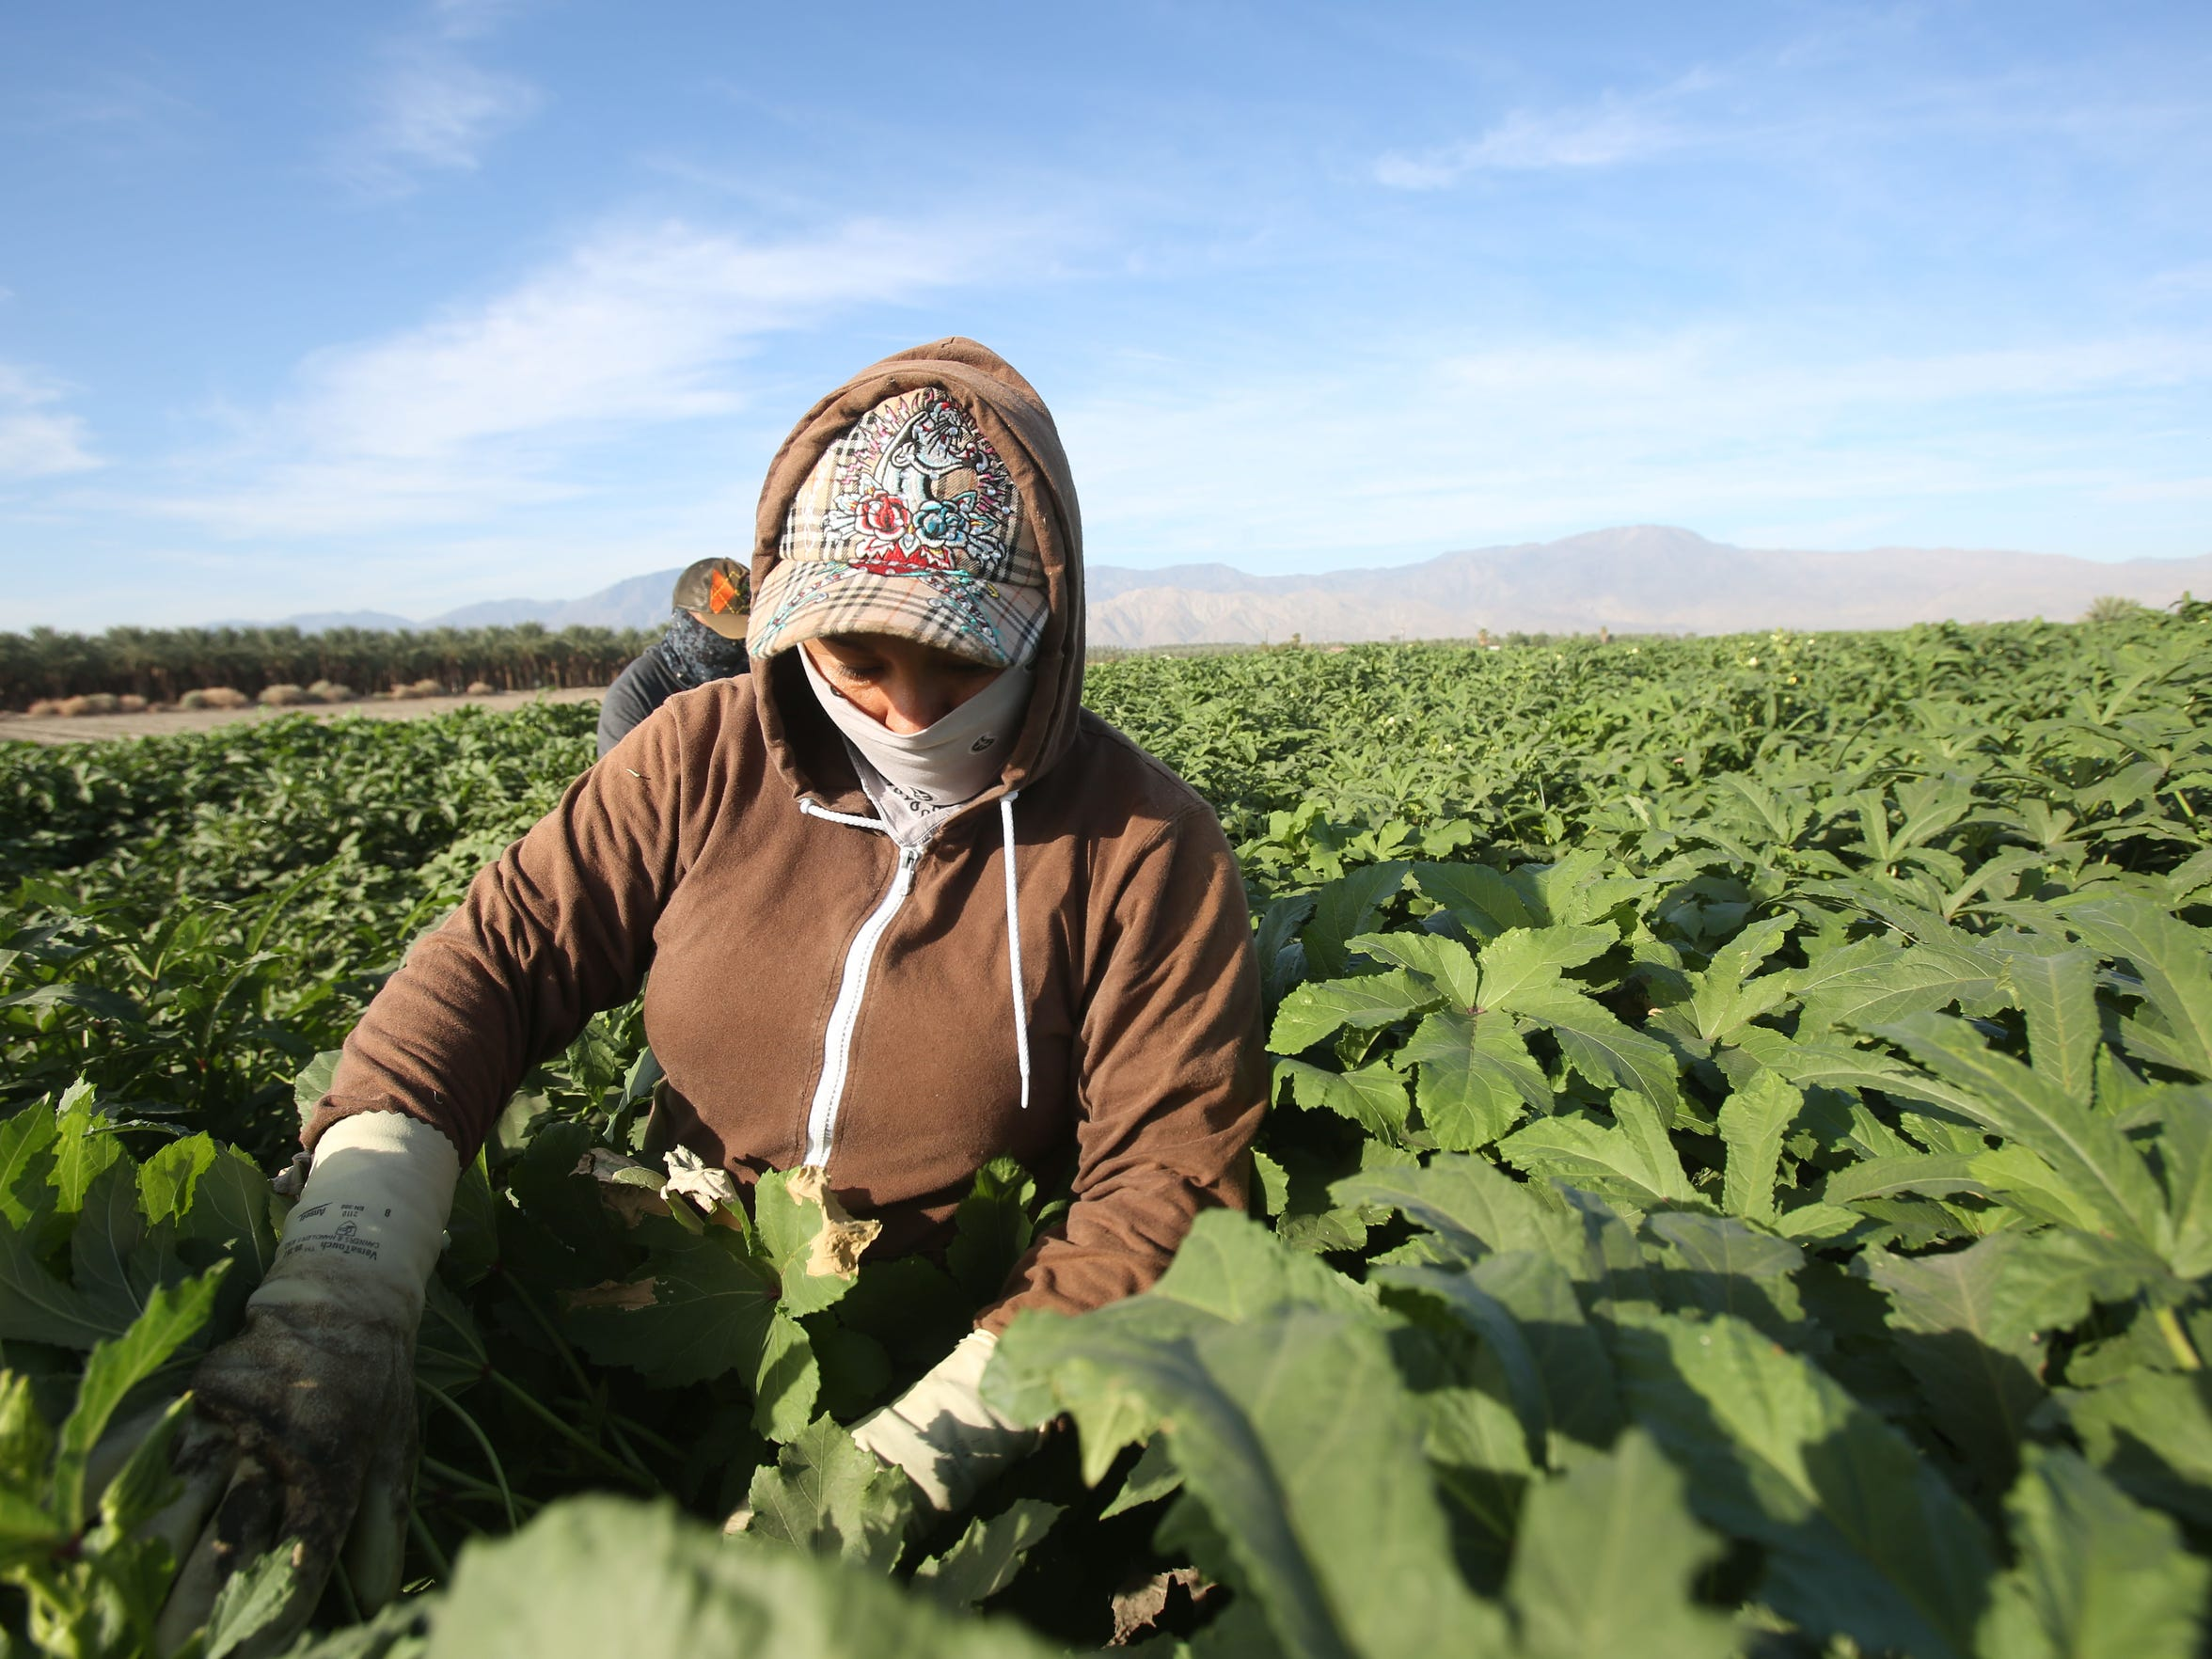 Farmers pick okra in temperatures reaching in the high 90s near Mecca, California, in early September.